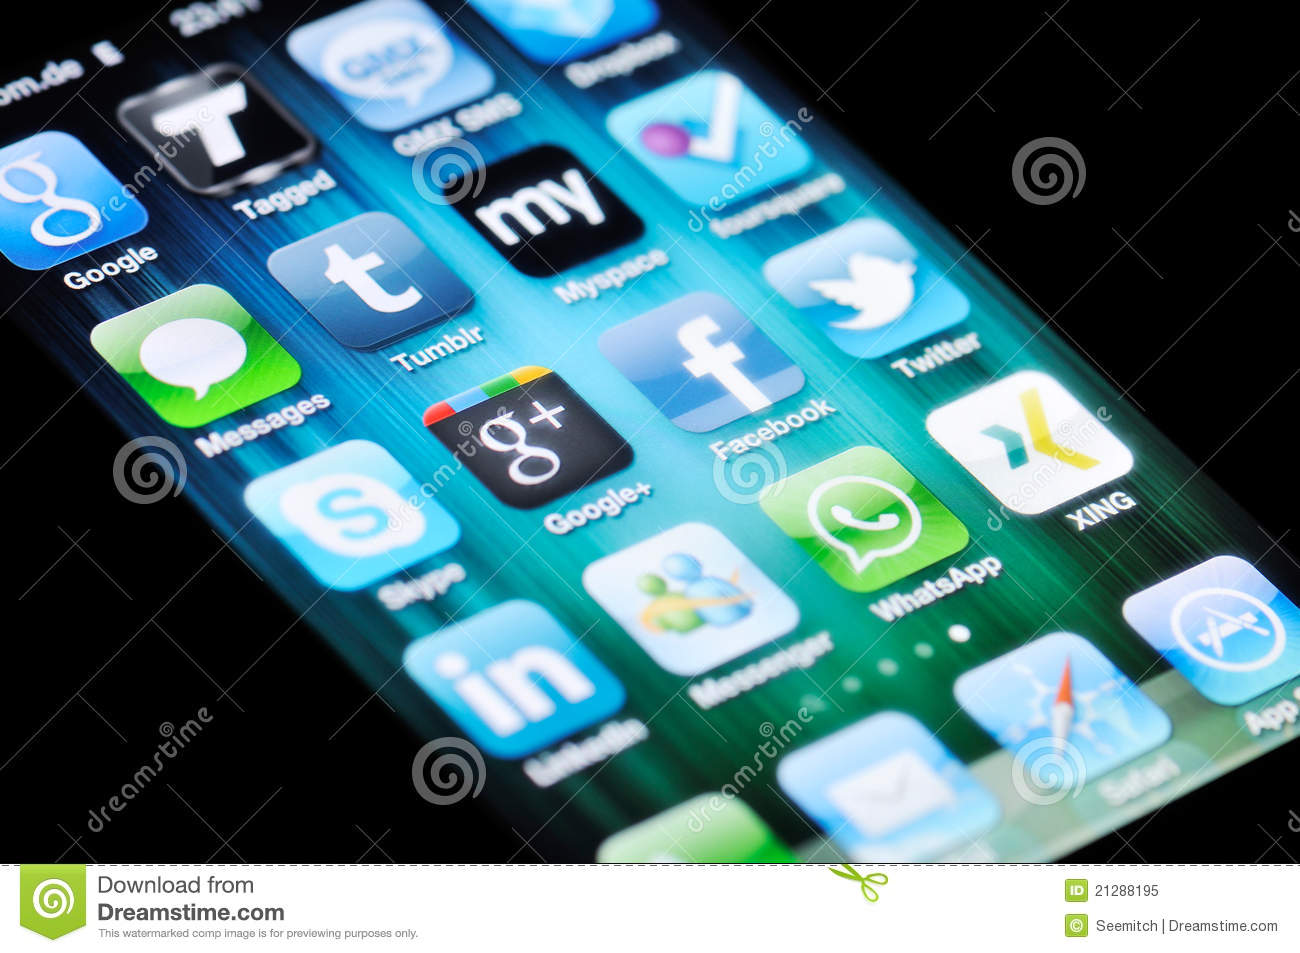 google search how to set up apple iphone 4s